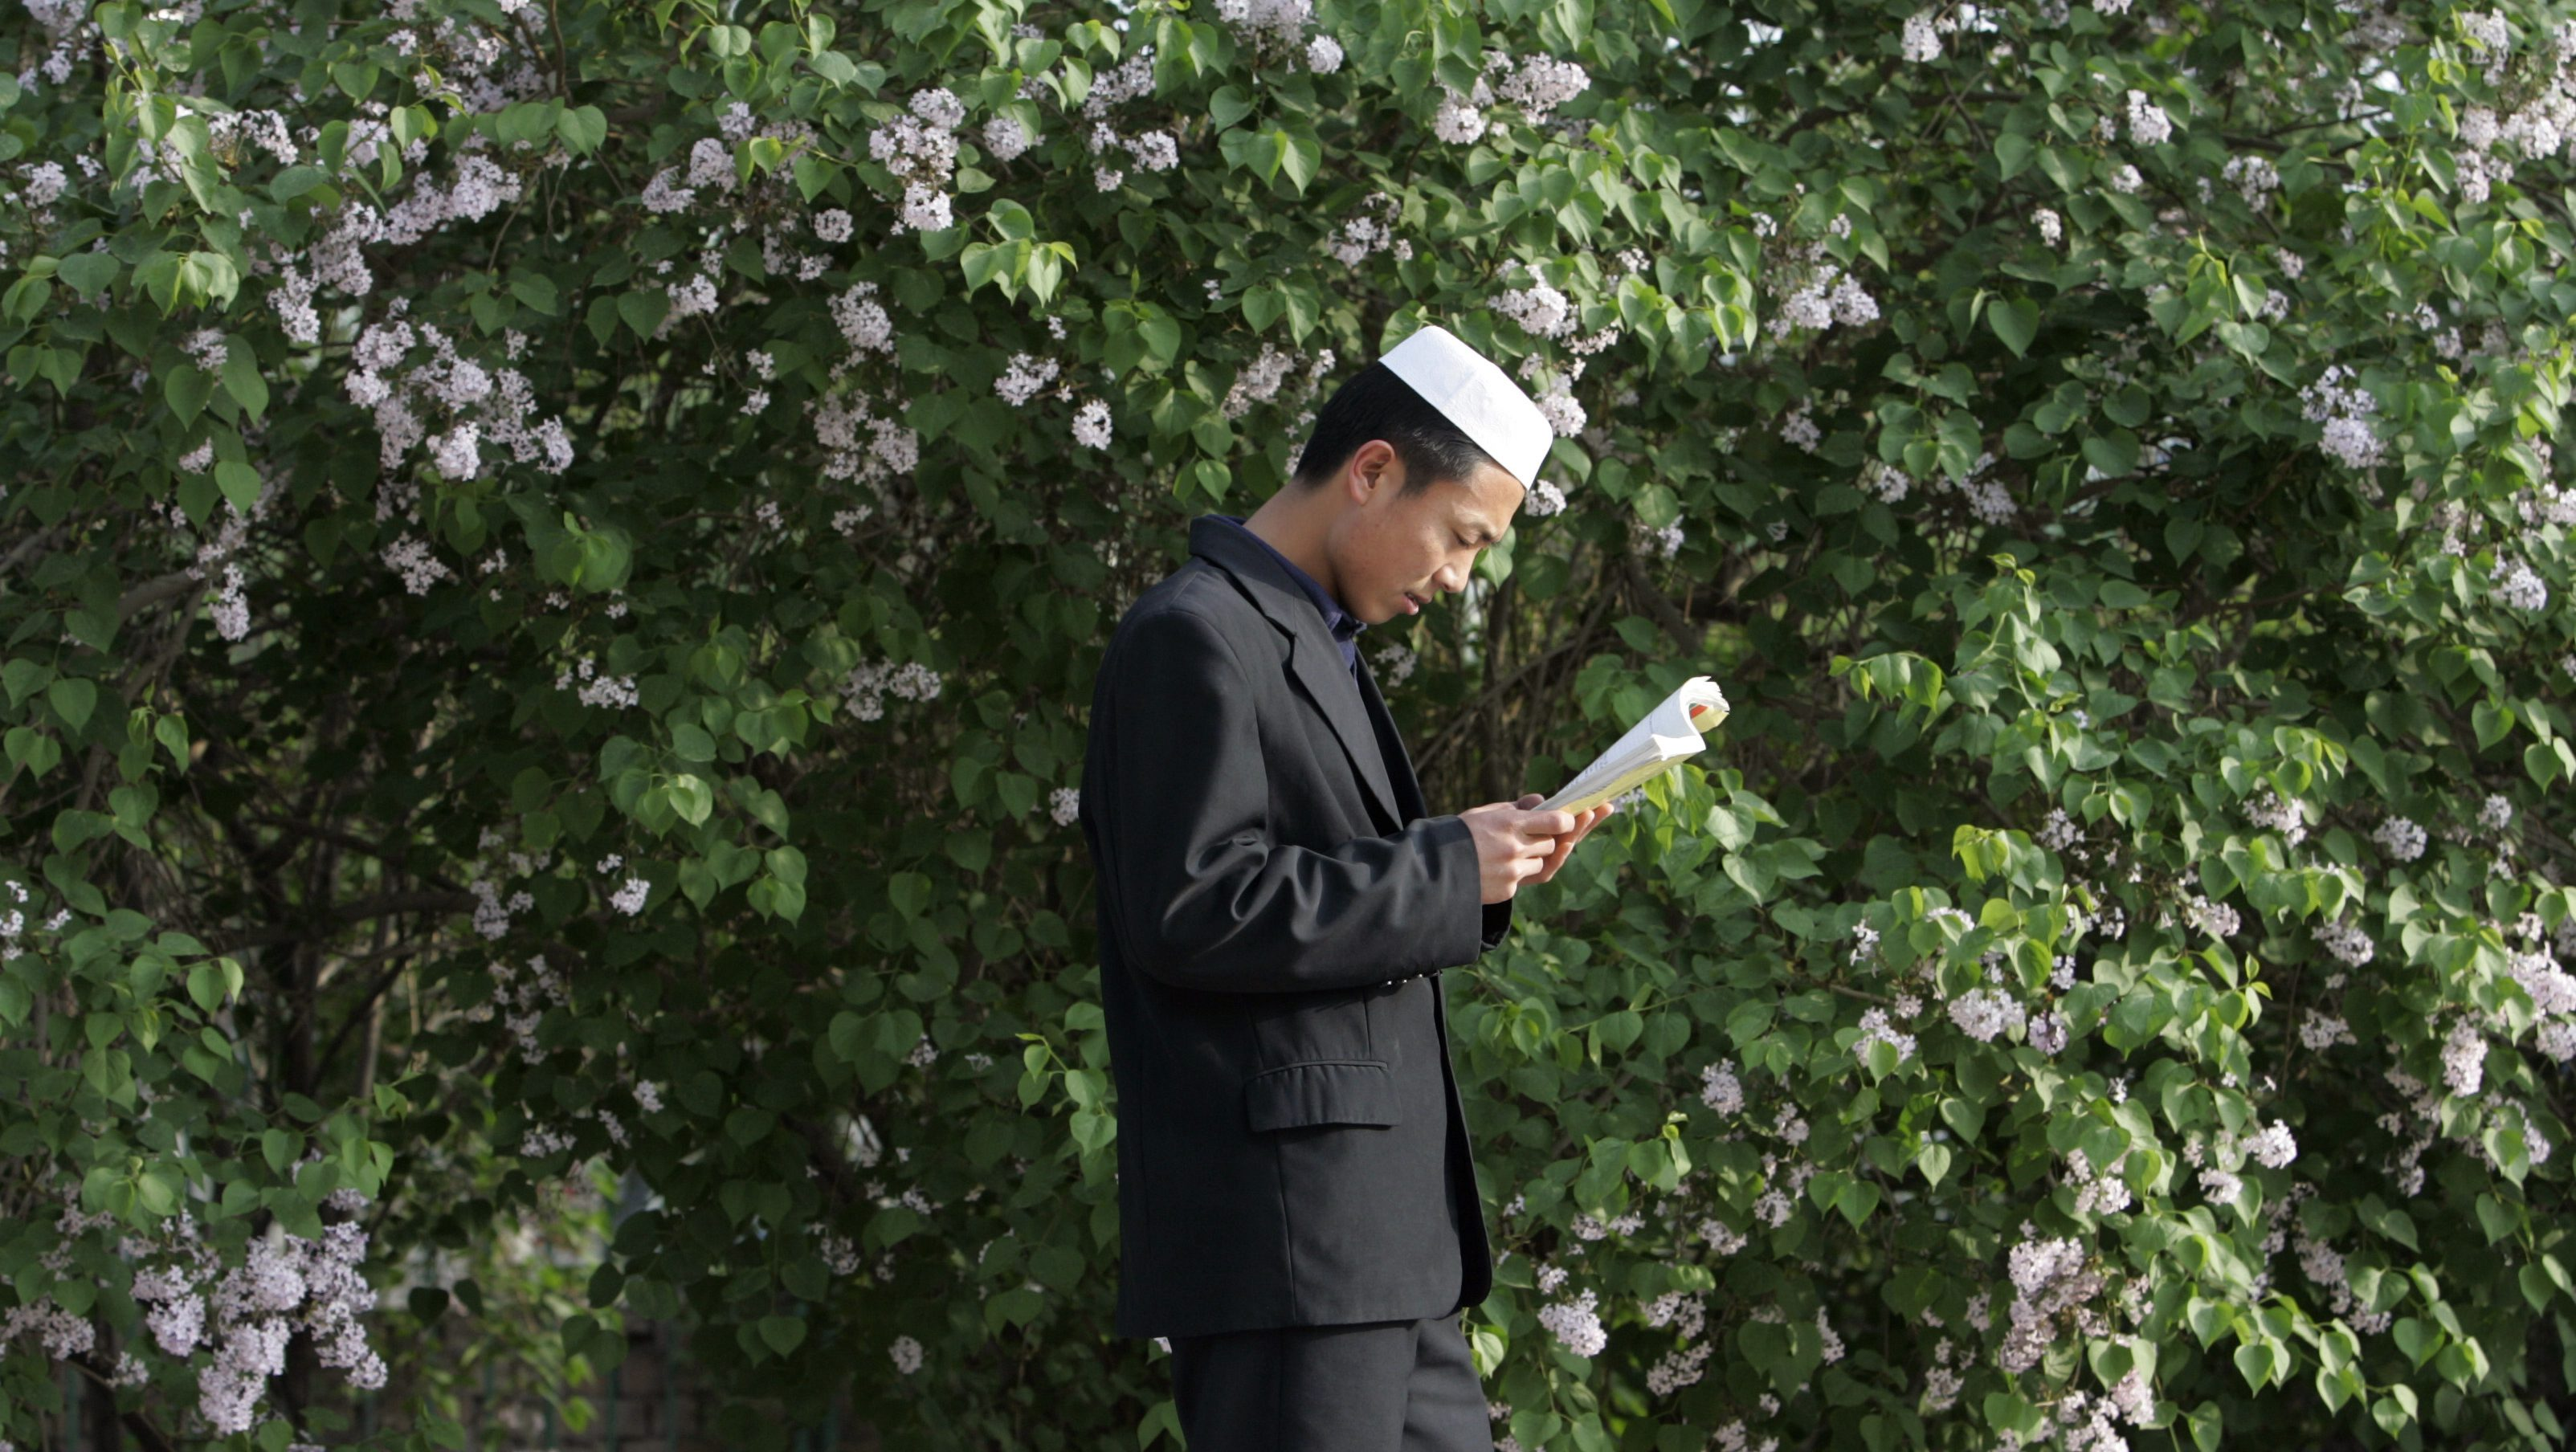 A Muslim student from the Chinese Hui minority studies at Ningxia Islamic College in Yinchuan, capital of northwest China's Ningxia Hui Autonomous Region, April 23,2007. According to school and local sources, more than 300 students, including 82 girls, learn culture, Arabic language, Islam and history at the college, which was founded in 1989.